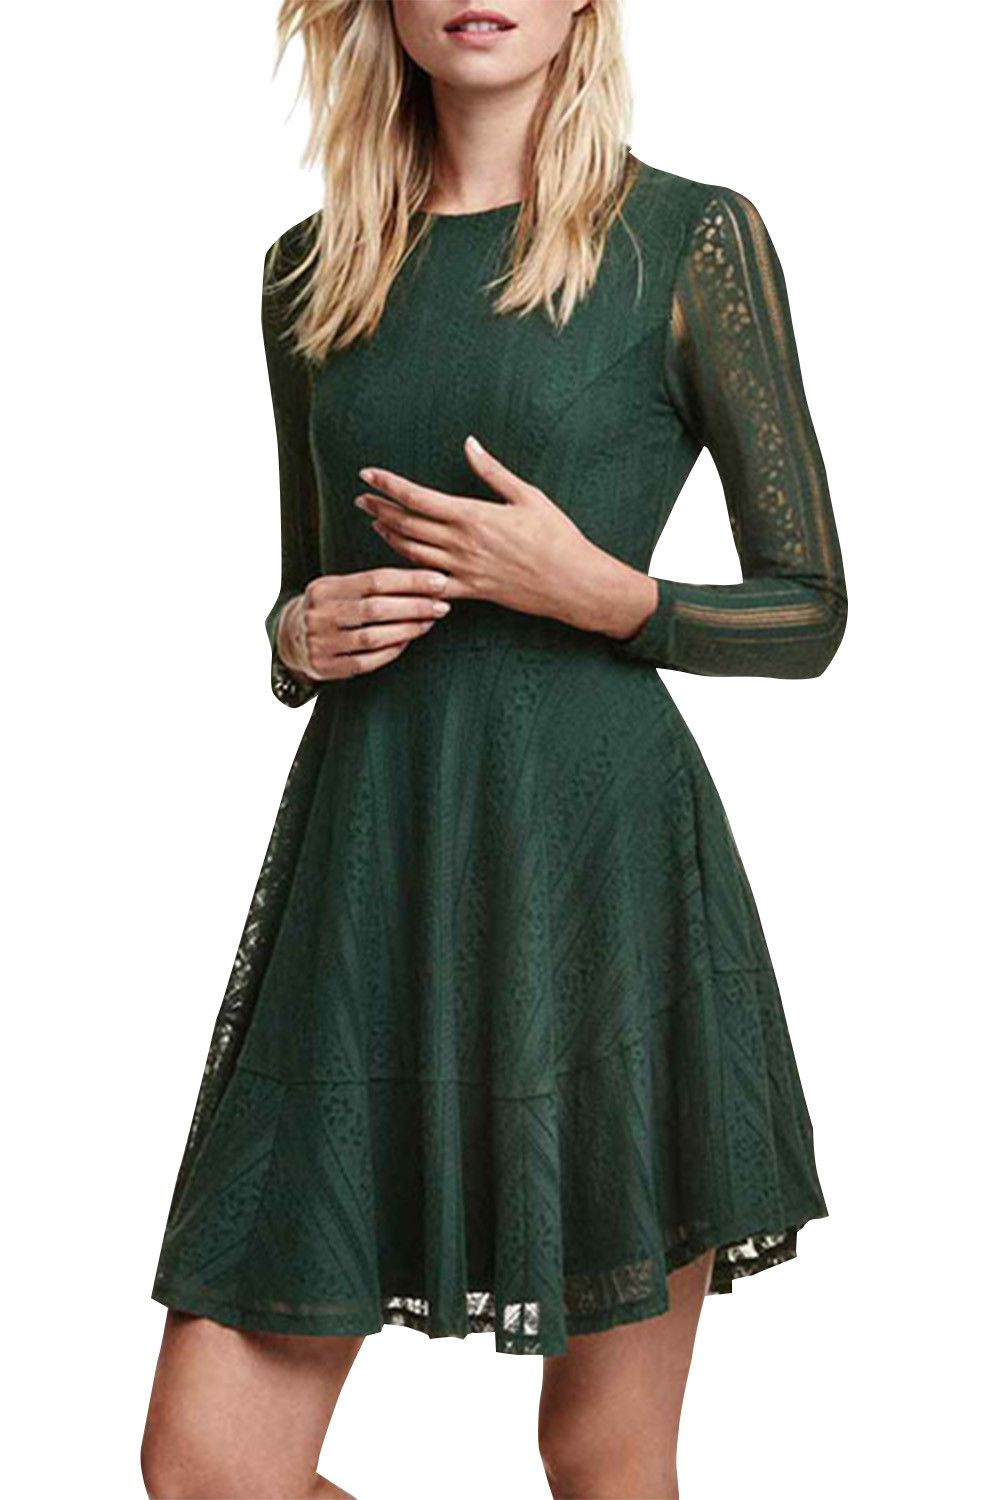 1dd58201b518 Love this one! Dark Olive green similar to #546E45